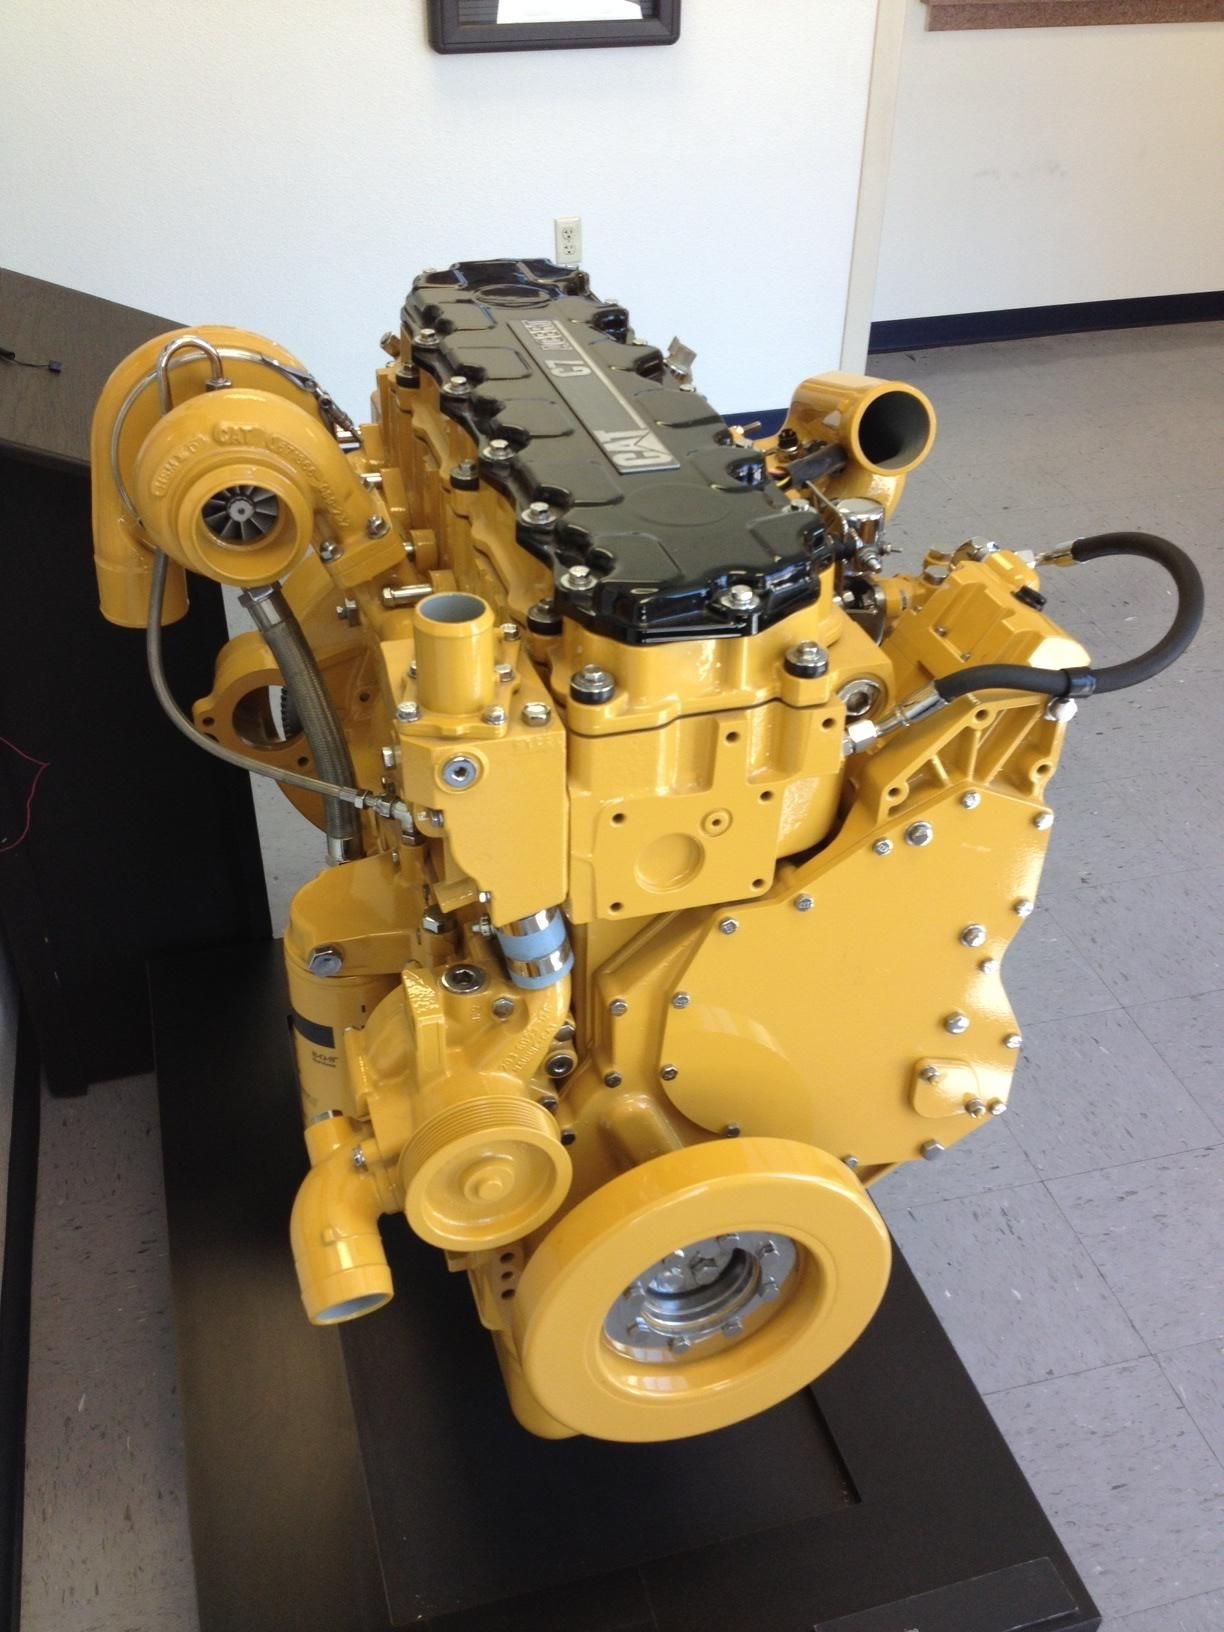 CAT C7 Medium Duty Diesel Engine[1224x1632][OC] | Engines of